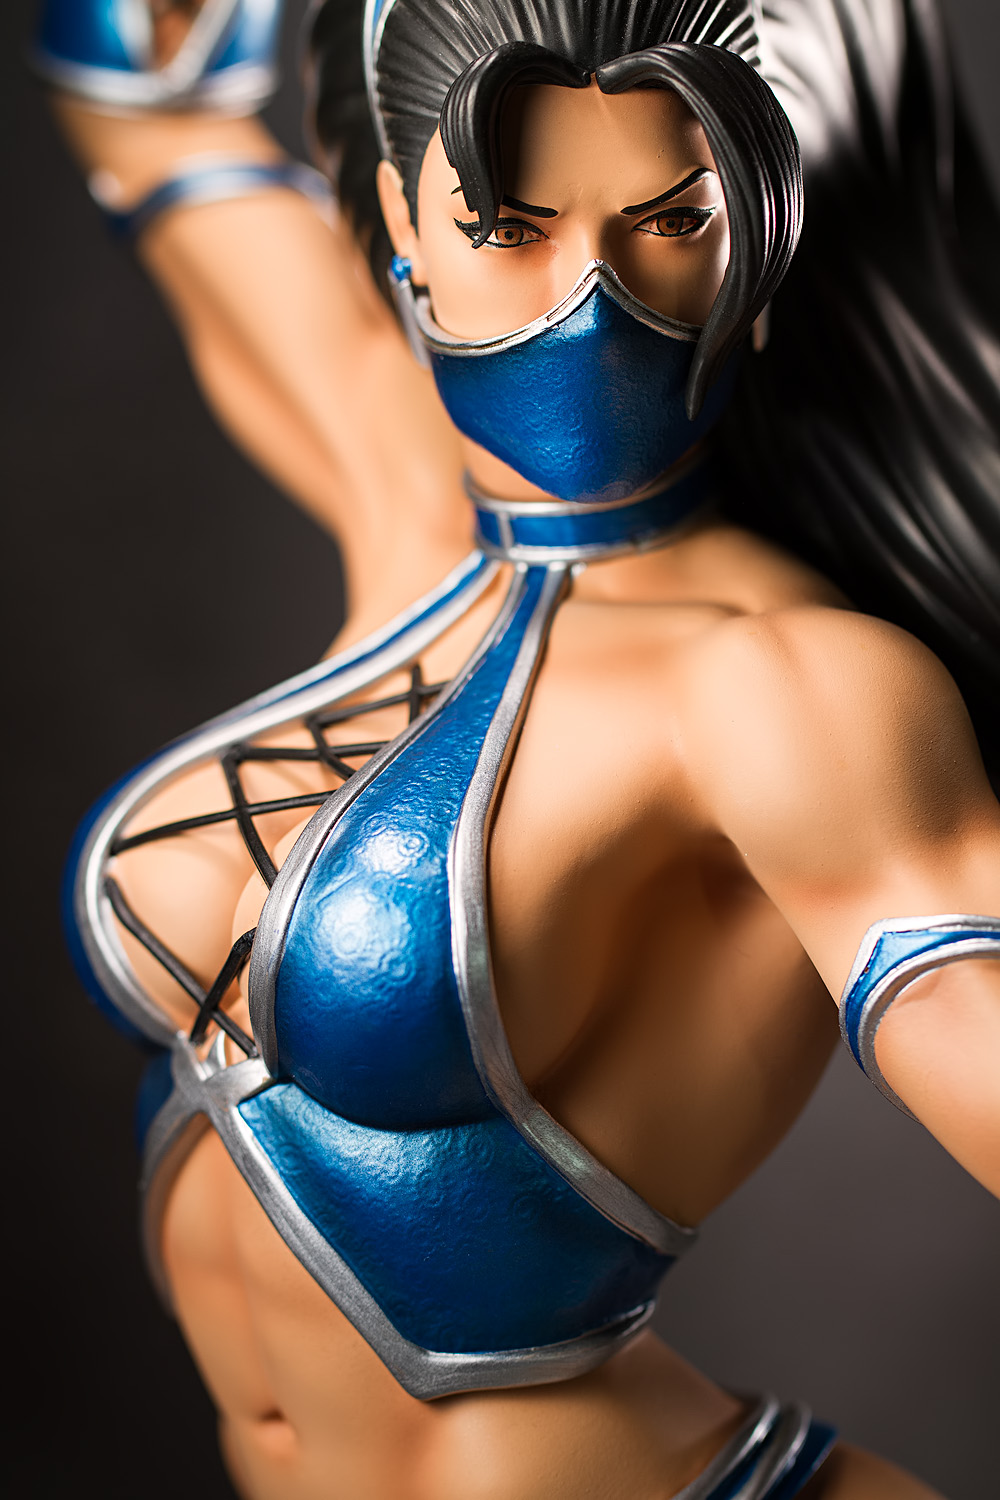 Kitana naked from mortal kombat xxx galleries